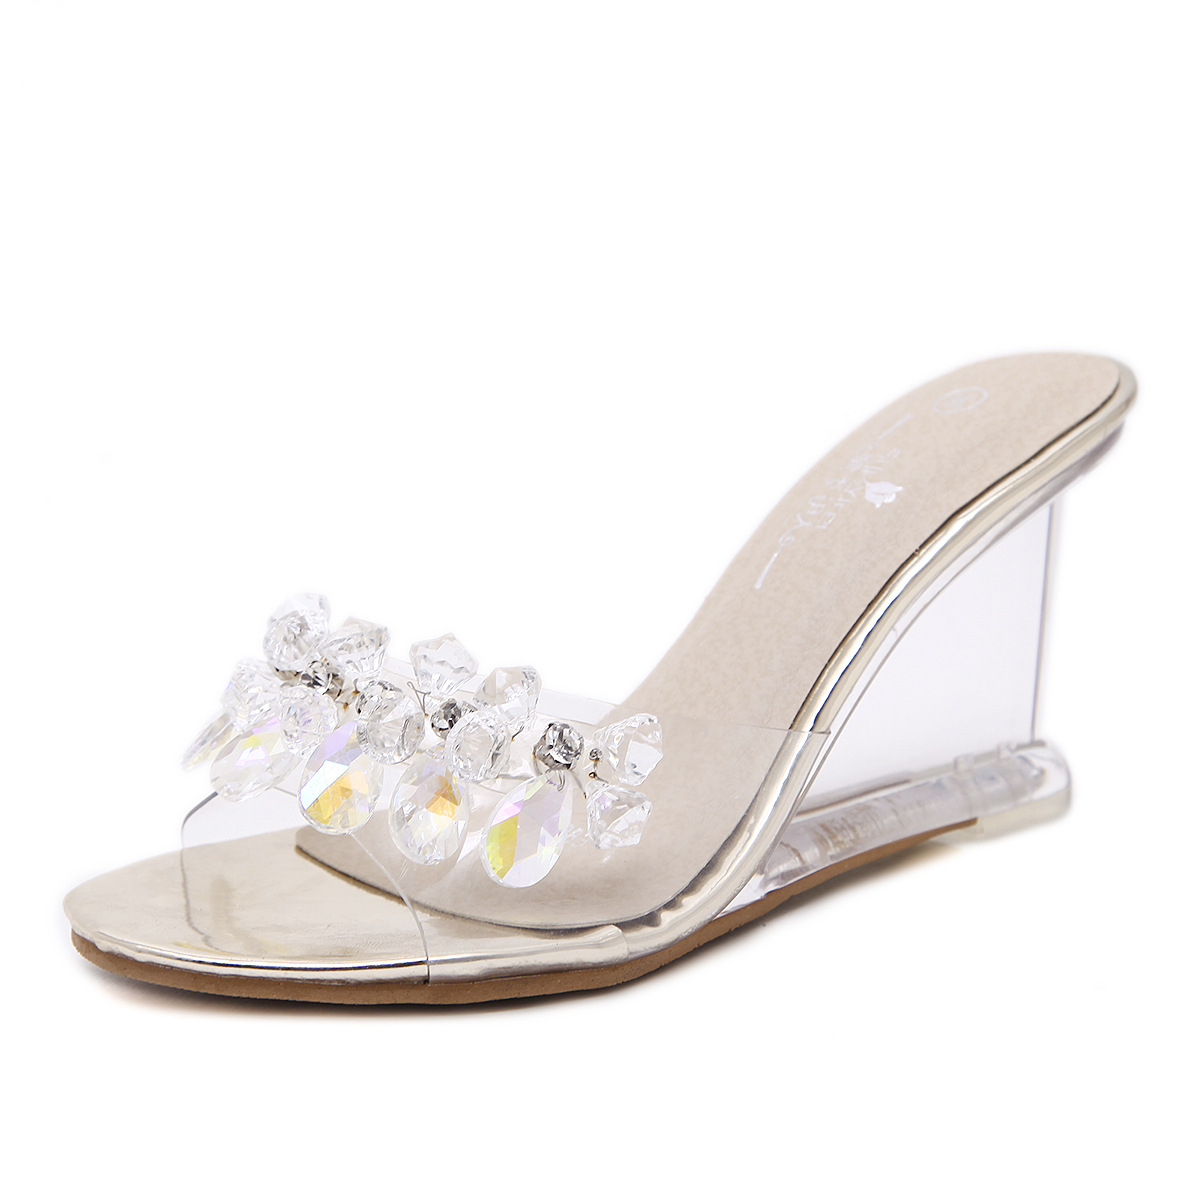 PVC Jelly Sandals Crystal Peep Toe Wedge Sandals High Heels Summer Women Shoes Fashion Beads Clear Heels Female Sandals Slippers